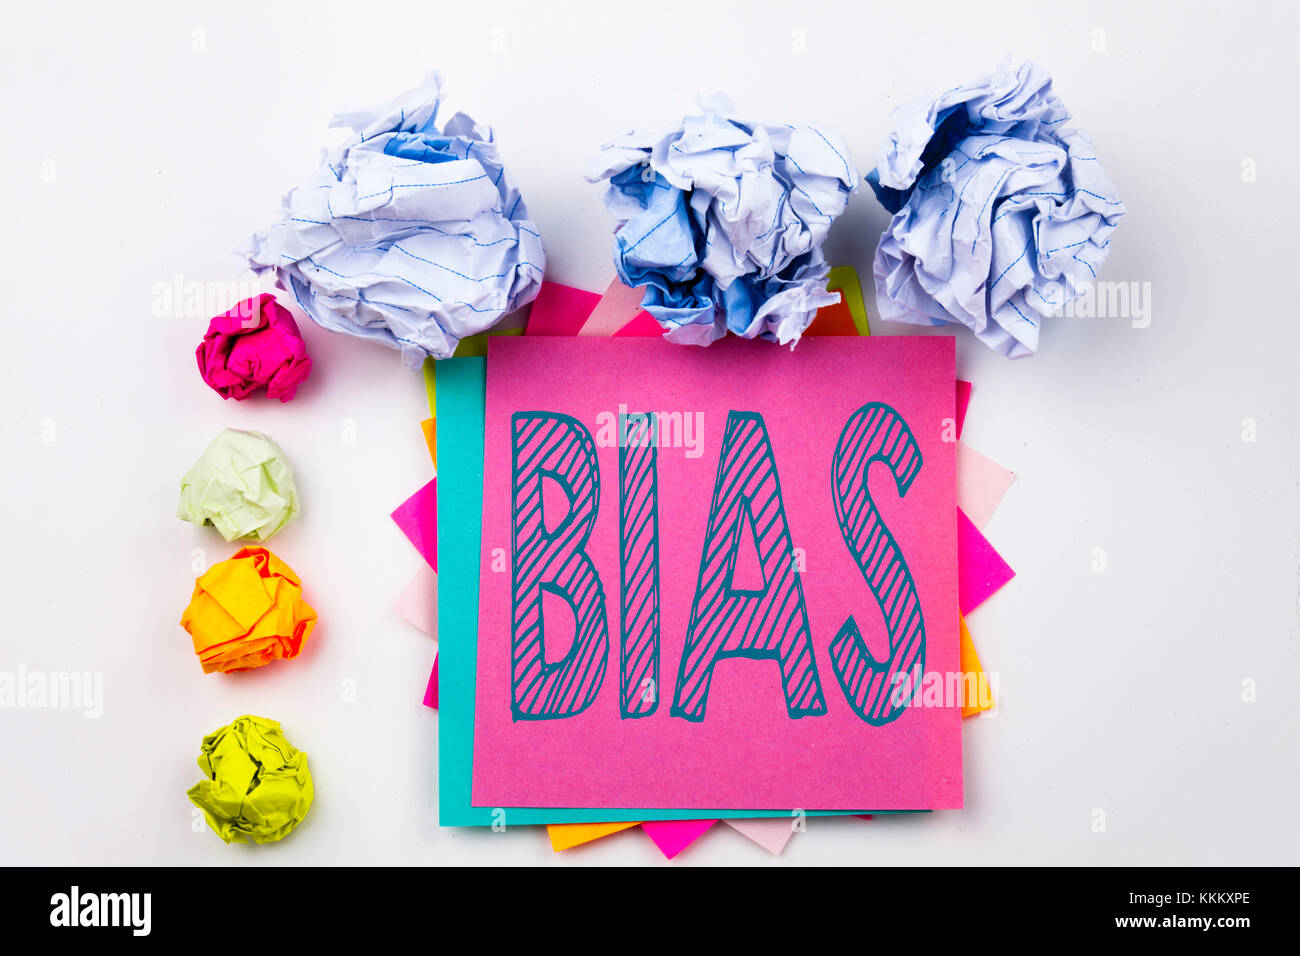 how bias is shown essay Bias can be a prejudice where a person, group or thing is favored over another,   the mainstream media demonstrated glaring bias during lgbtq pride month.